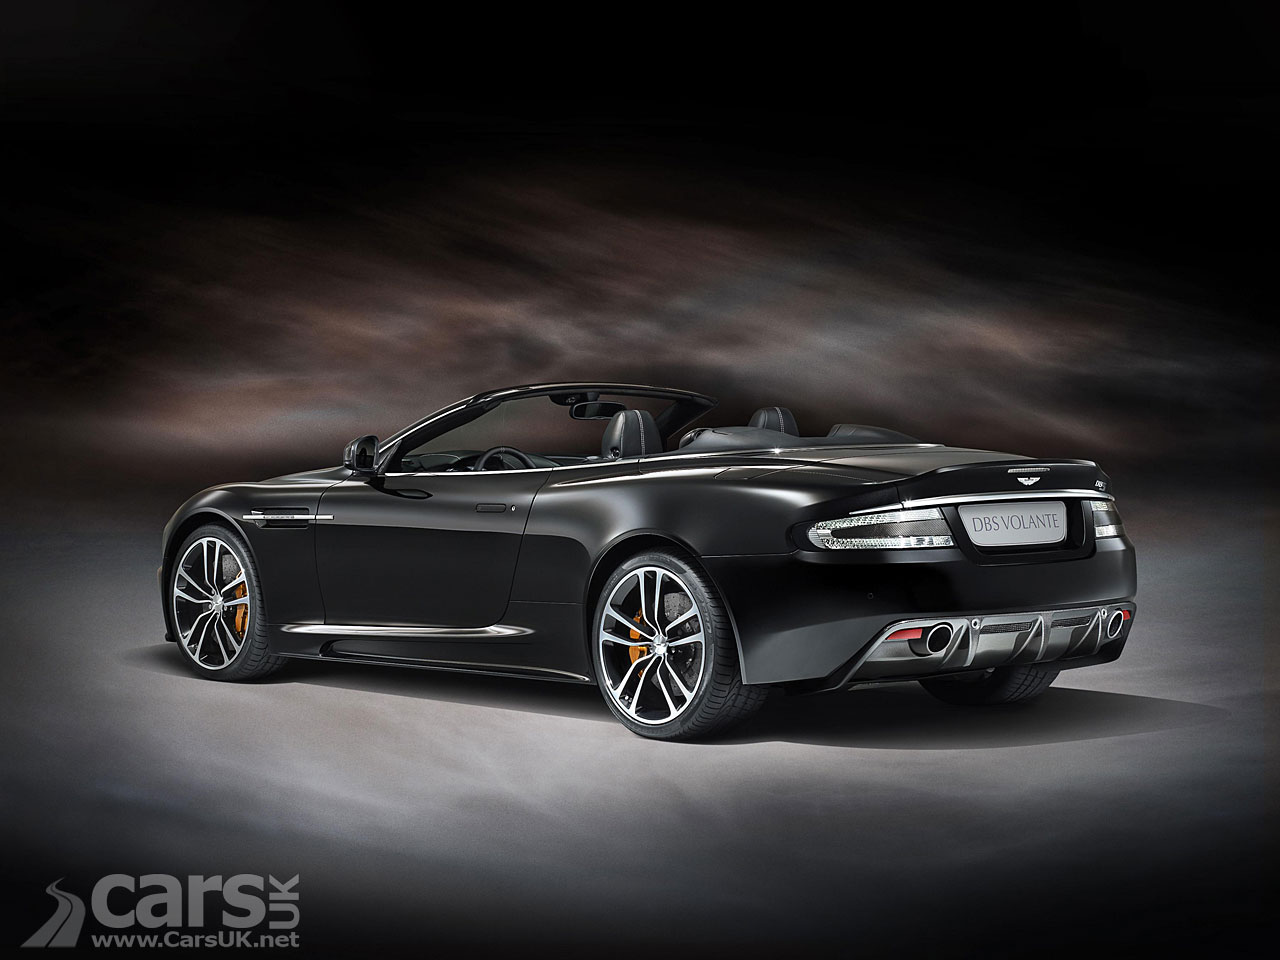 Aston Martin DBS Carbon Edition Wallpaper Free For PC